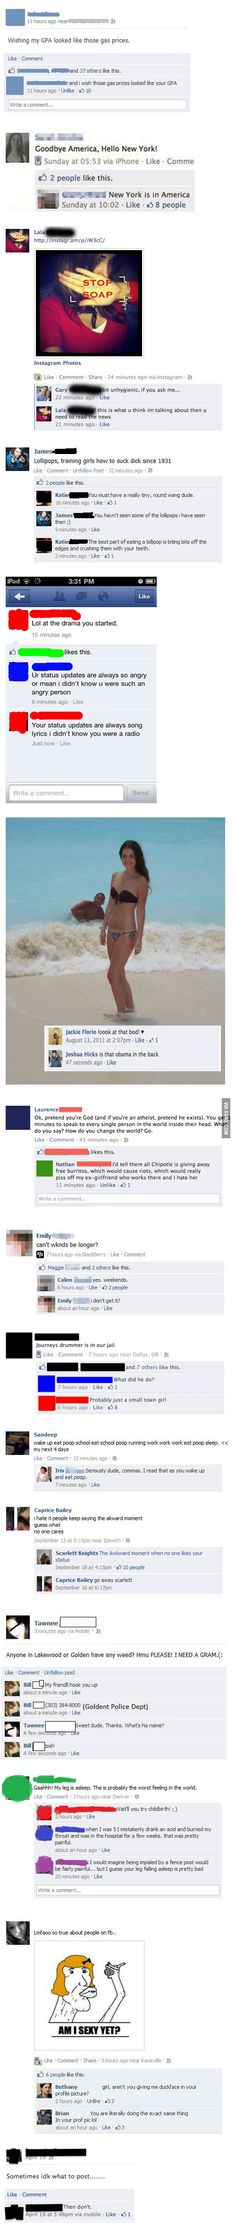 These are some priceless Facebook comebacks